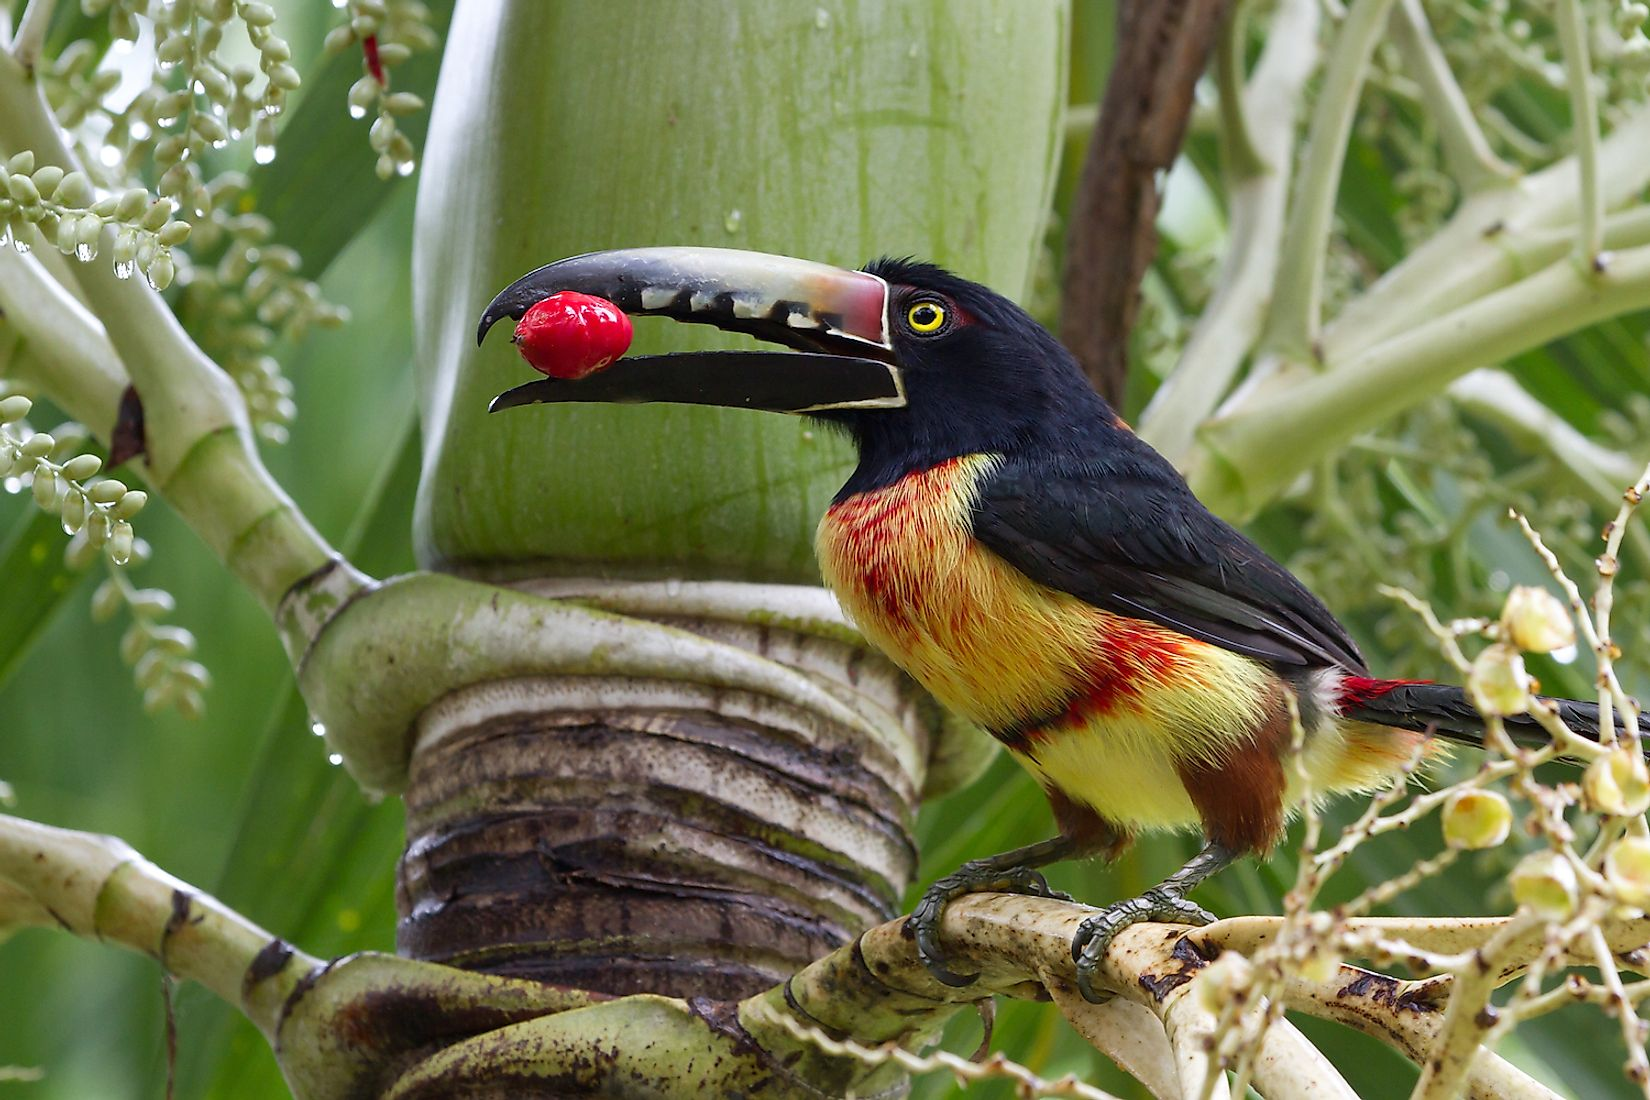 An Aracari toucan in the rain forest of Belize. Image credit: Wollertz/Shutterstock.com